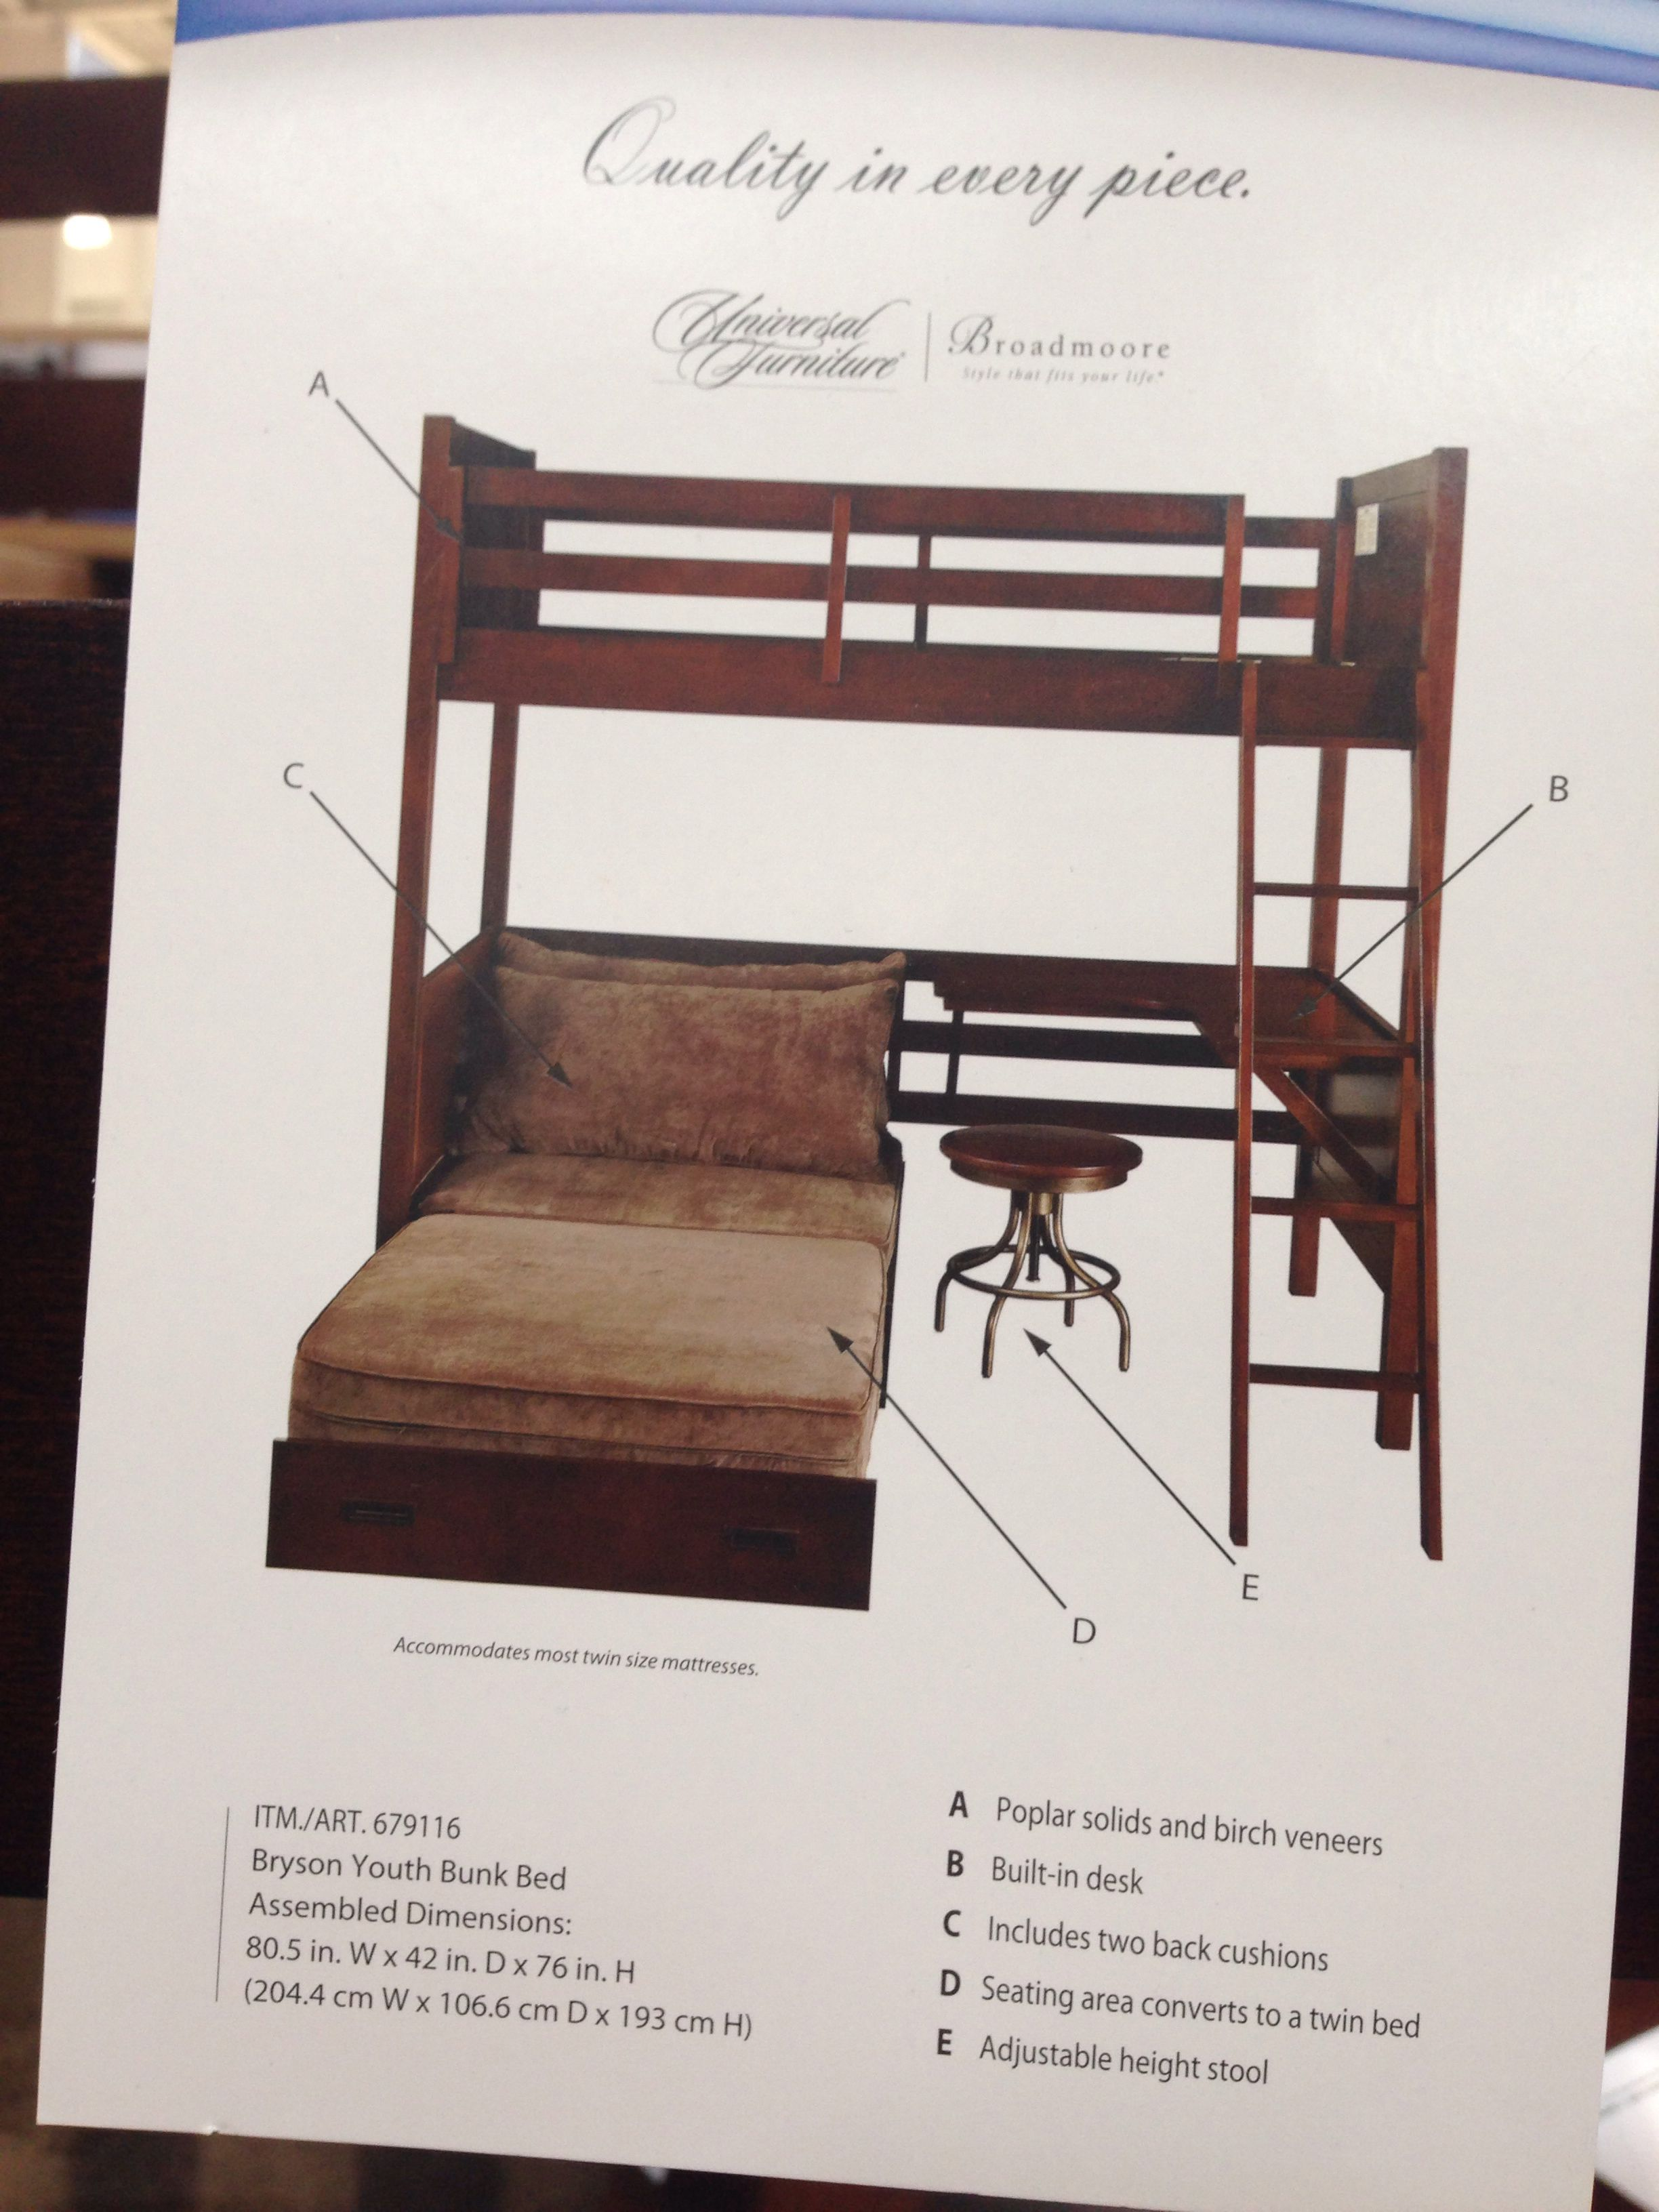 Bryson Youth Bunk Bed 999 99 Bunk Beds Twin Bunk